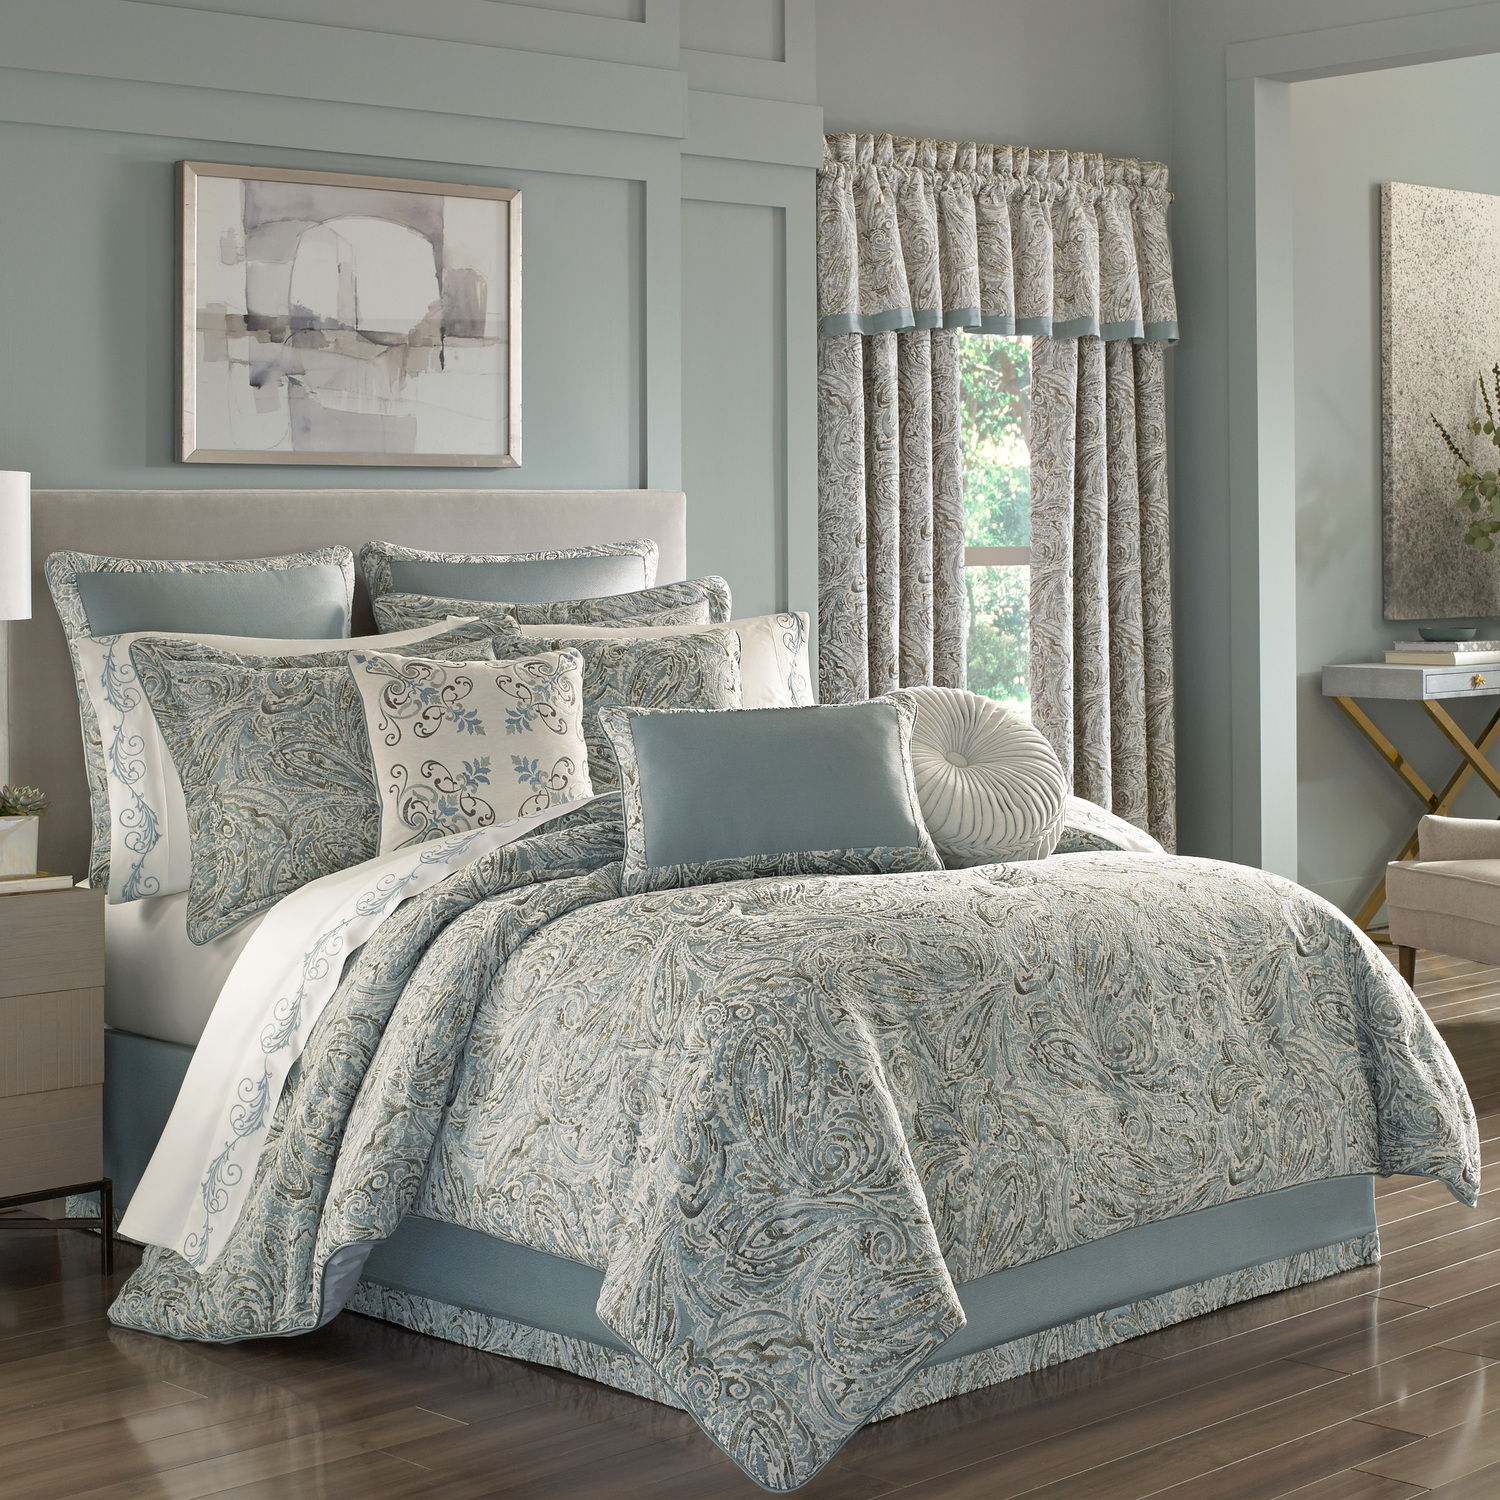 bedding beddingsuperstore york set collection kids by hotel com new category comforter bollywood waverly